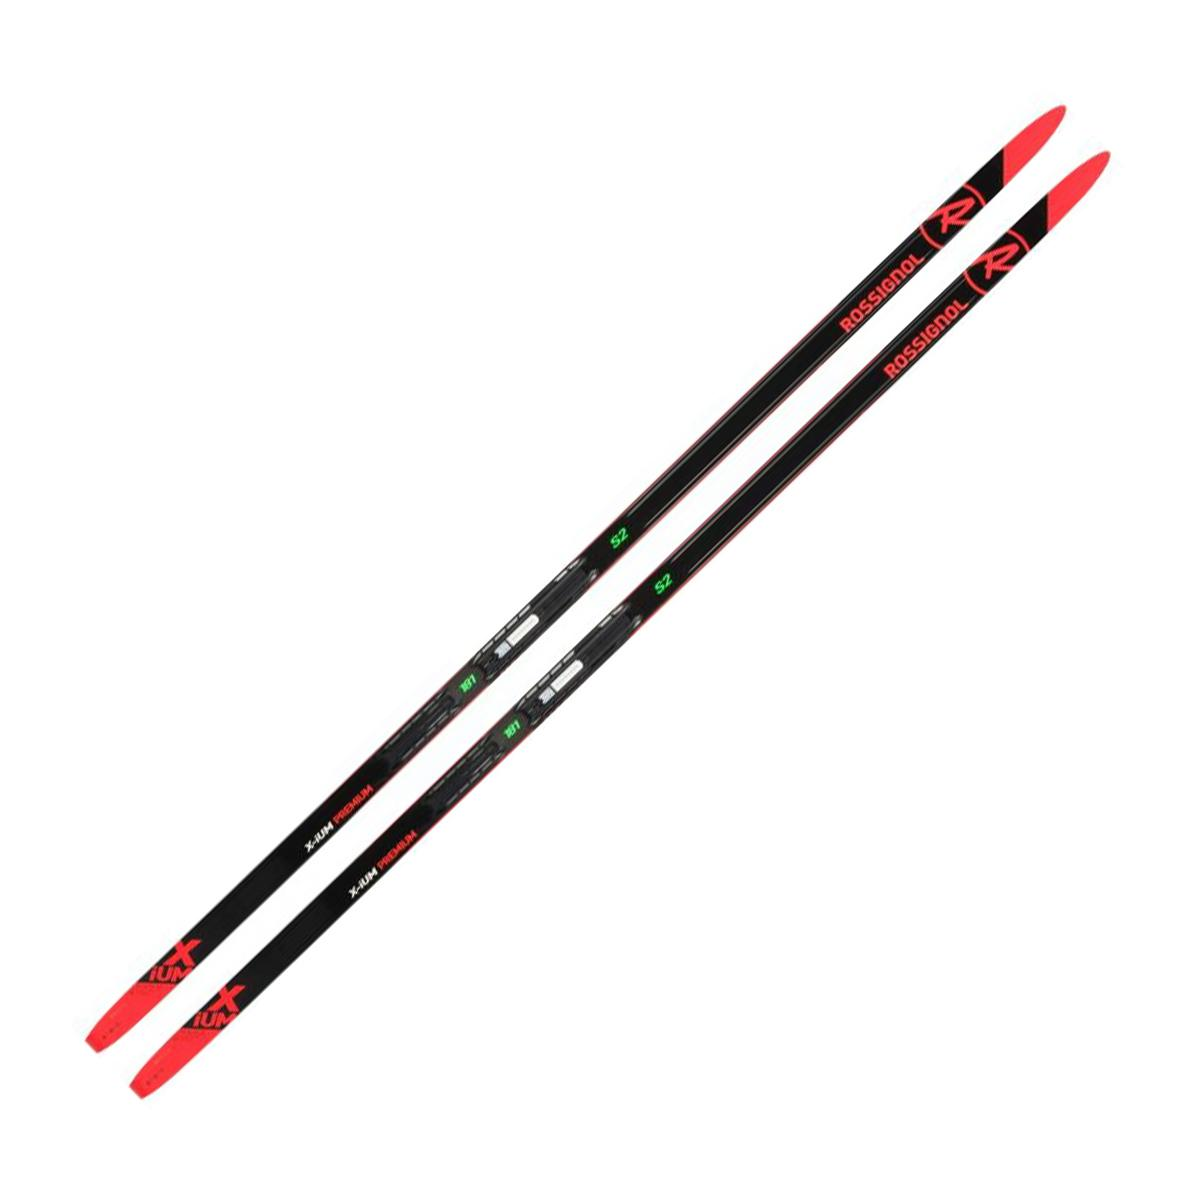 Rossignol X-Ium Skating IFP Ski in Black and Red